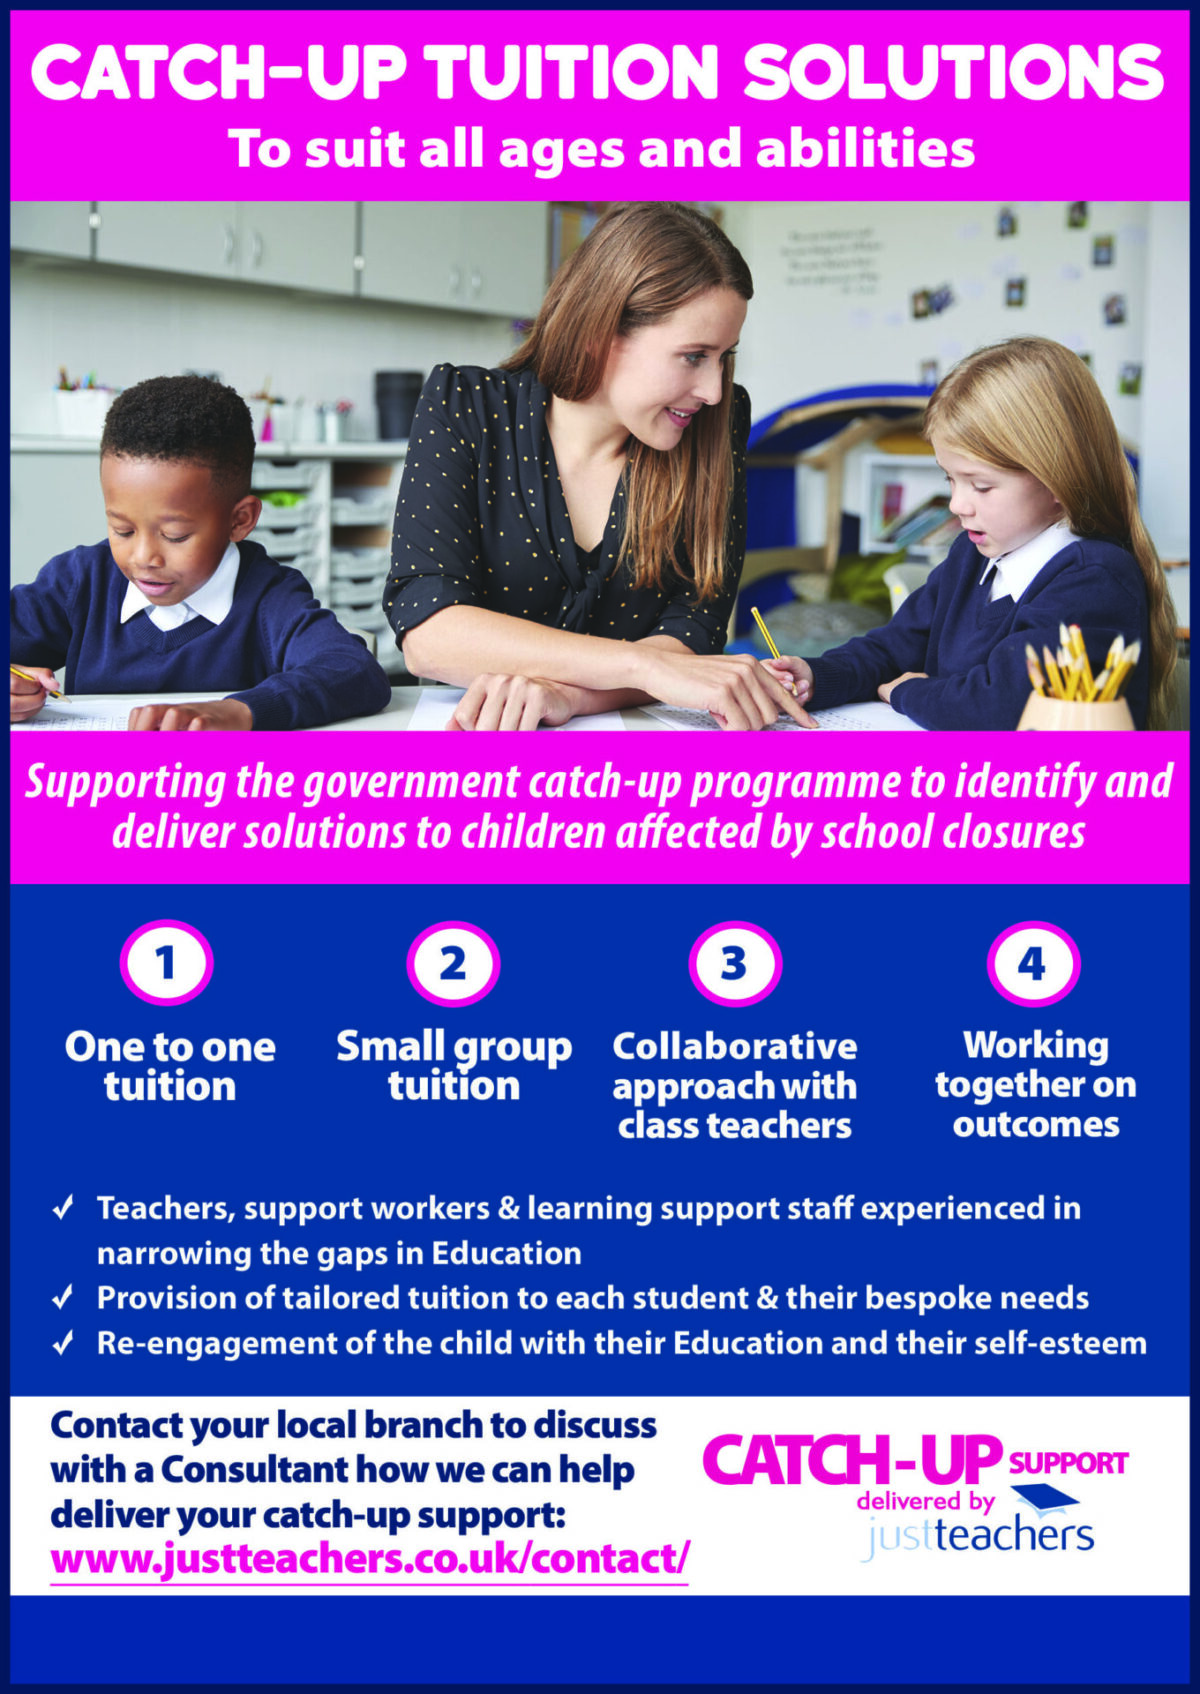 justteachers – catch up tuition solutions to narrow the gap